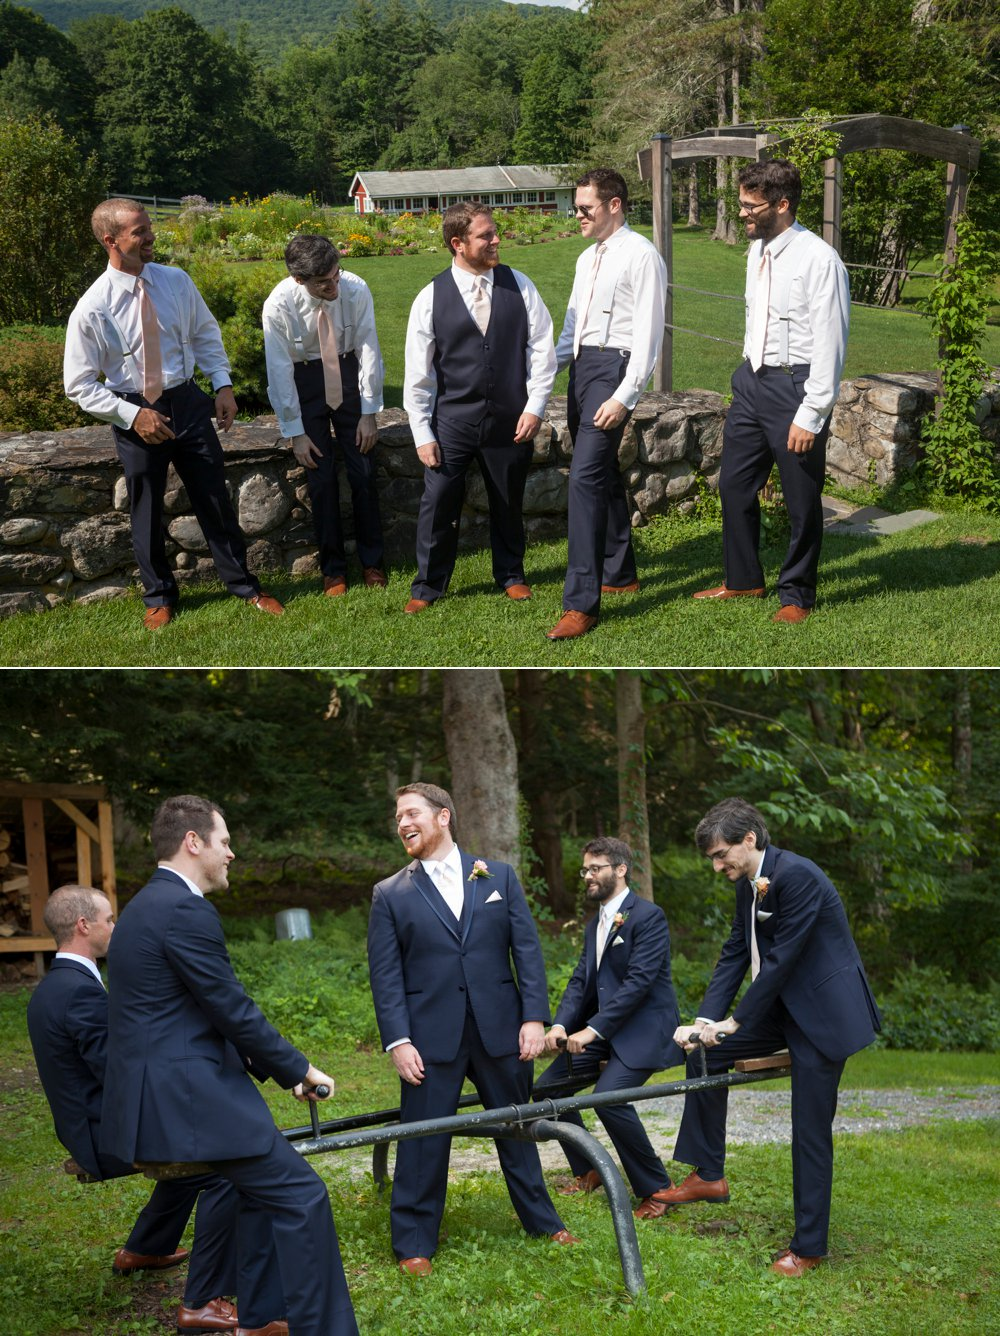 SomerbyJonesPhotography_WestMountainInnWedding_WestMountainInn_RusticVermontWedding_0015.jpg